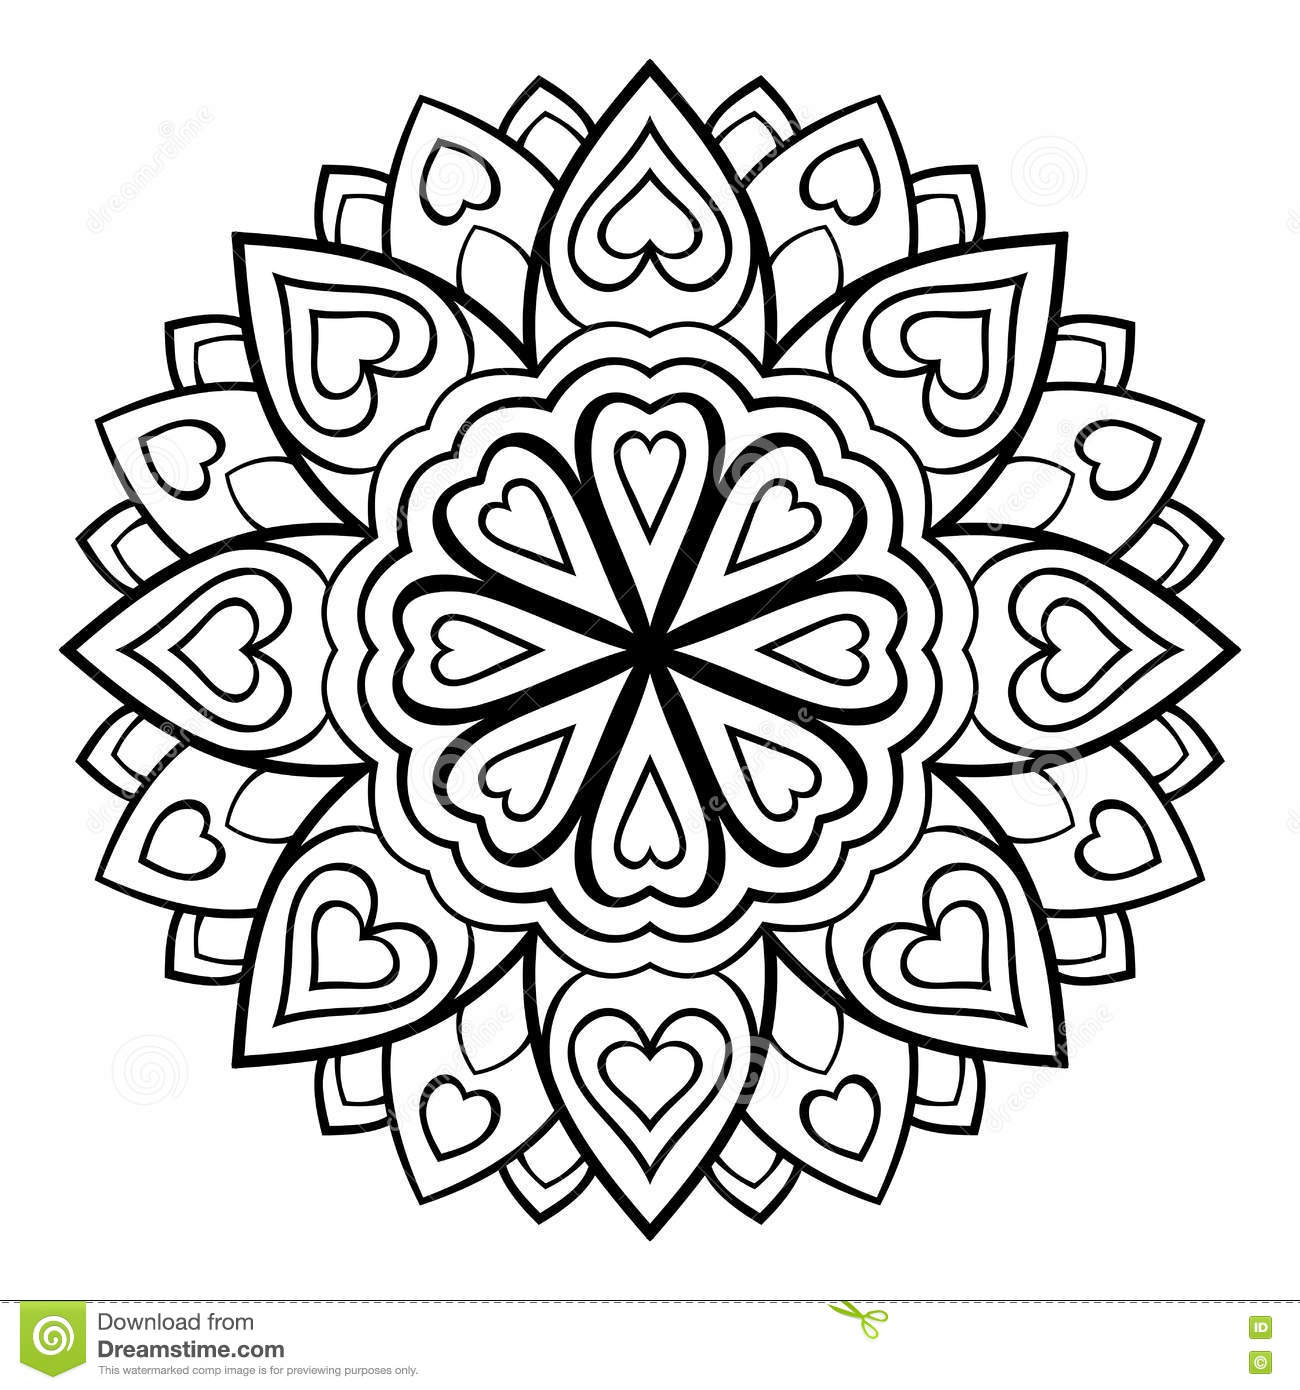 Coloring Pictures For as well 61593 tiles cp as well Stock Illustration Flower Mandala Black Lines Vector White Background Round Element Decor Stylized Ivy Leaves Template Any Image61147306 furthermore Coloring Print Islamic Art Coloring Pages About Traditional Islamic Mosaic Coloring Page Free Printable Coloring furthermore Sun Coloring Pages. on simple mosaic tile patterns